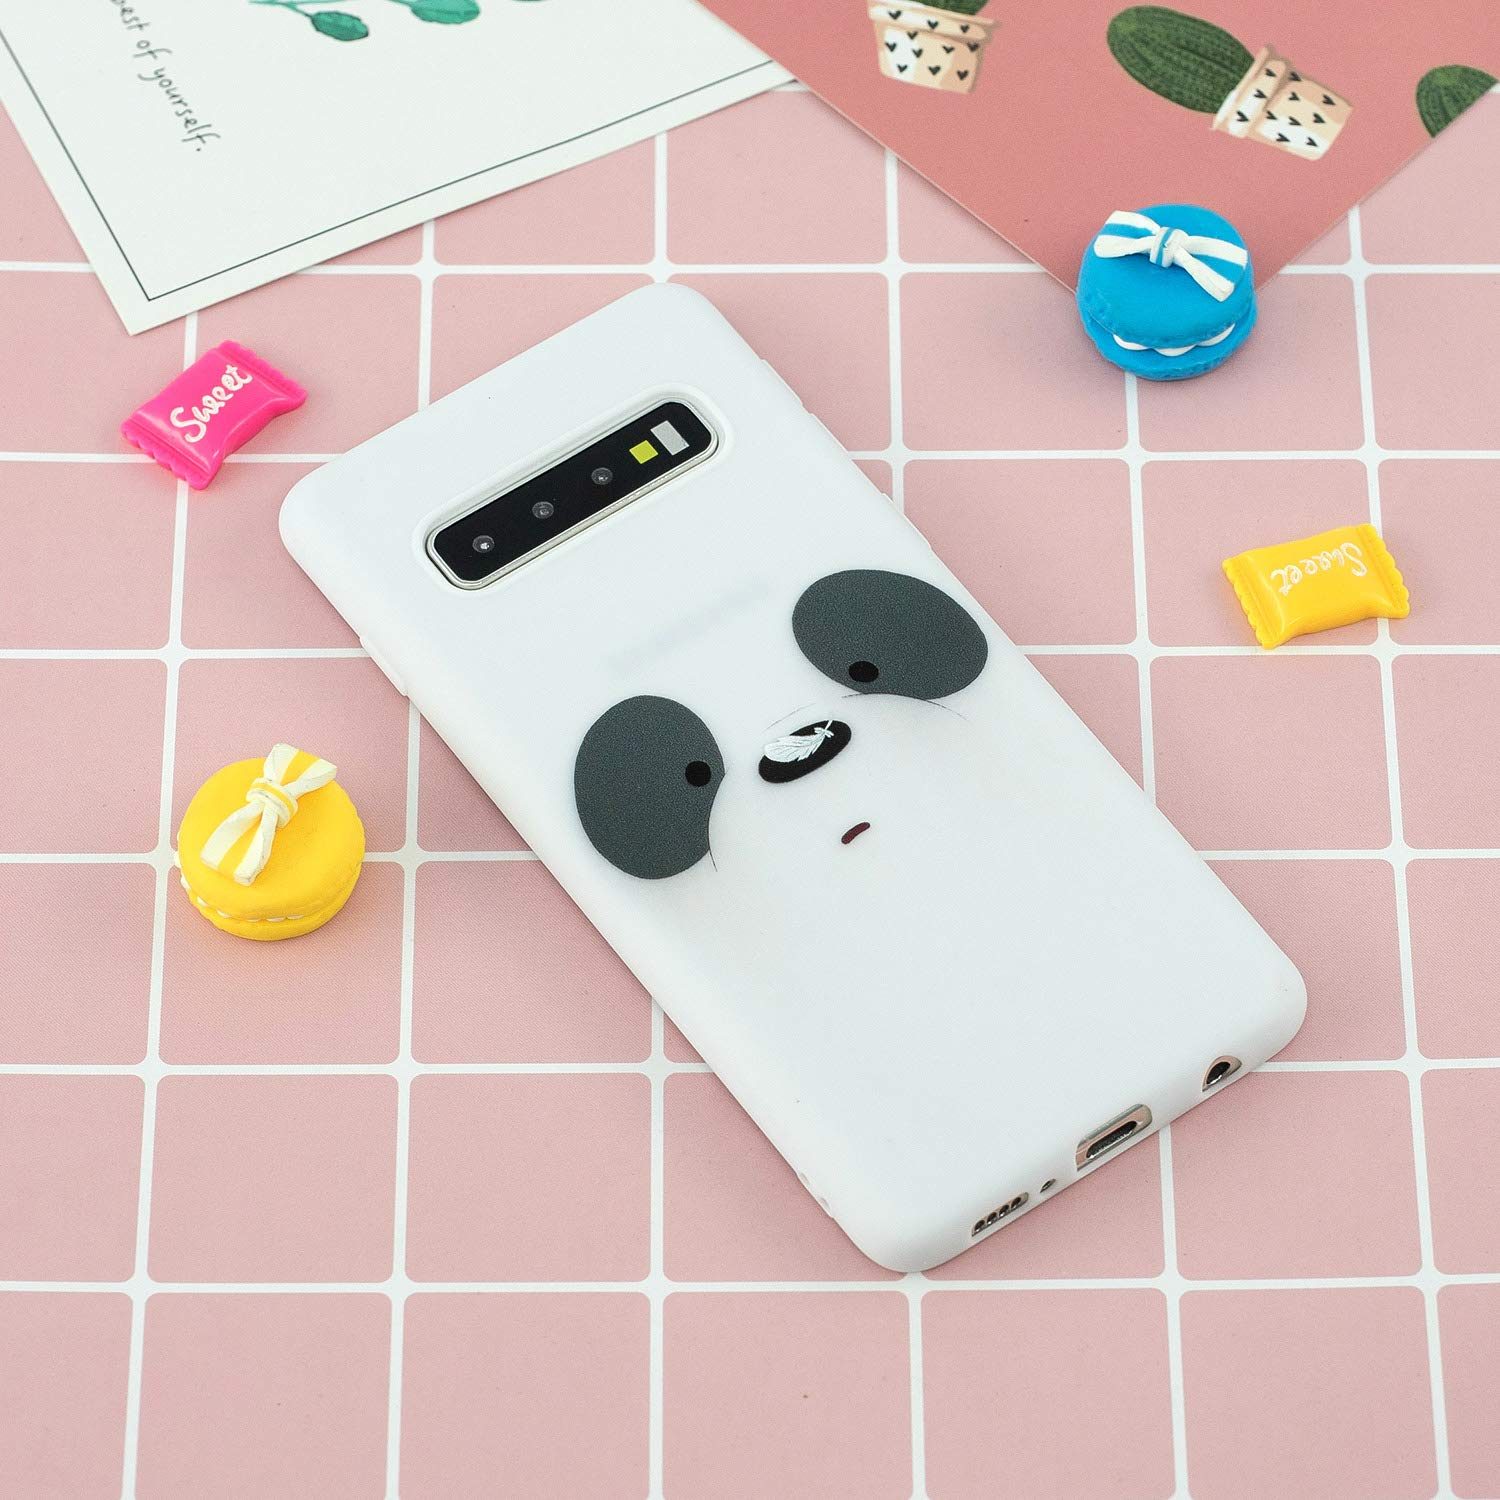 3D Cute Cartoon Animals Pattern Design Soft Silicone Gel Slim Rubber Thin Protective Cover Phone with Lanyard Strap Case for Samsung Galaxy S10 Plus 2019-dinosaur DAMONDY Galaxy S10 Plus Case